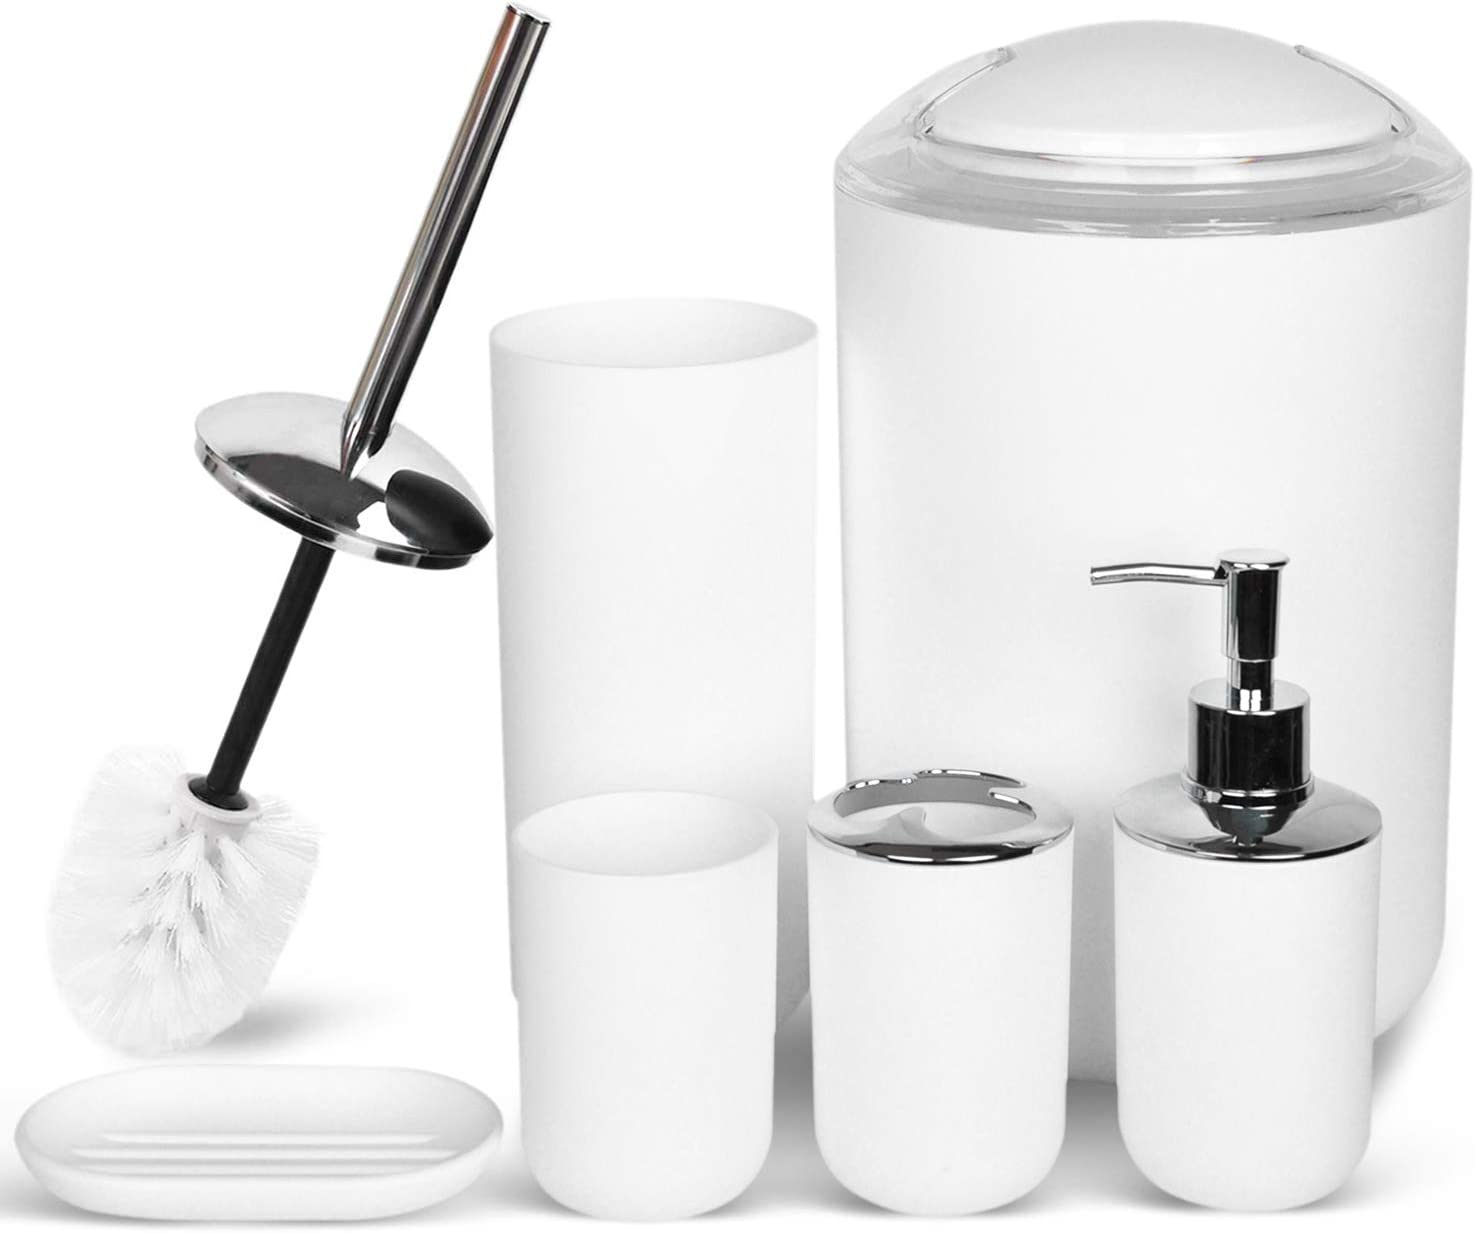 Soap Dish for Decorative Countertop and Housewarming Gift,New White Toothbrush Holder Toothbrush Cup CERBIOR Bathroom Accessories Set 6 Piece Bath Ensemble Includes Soap Dispenser